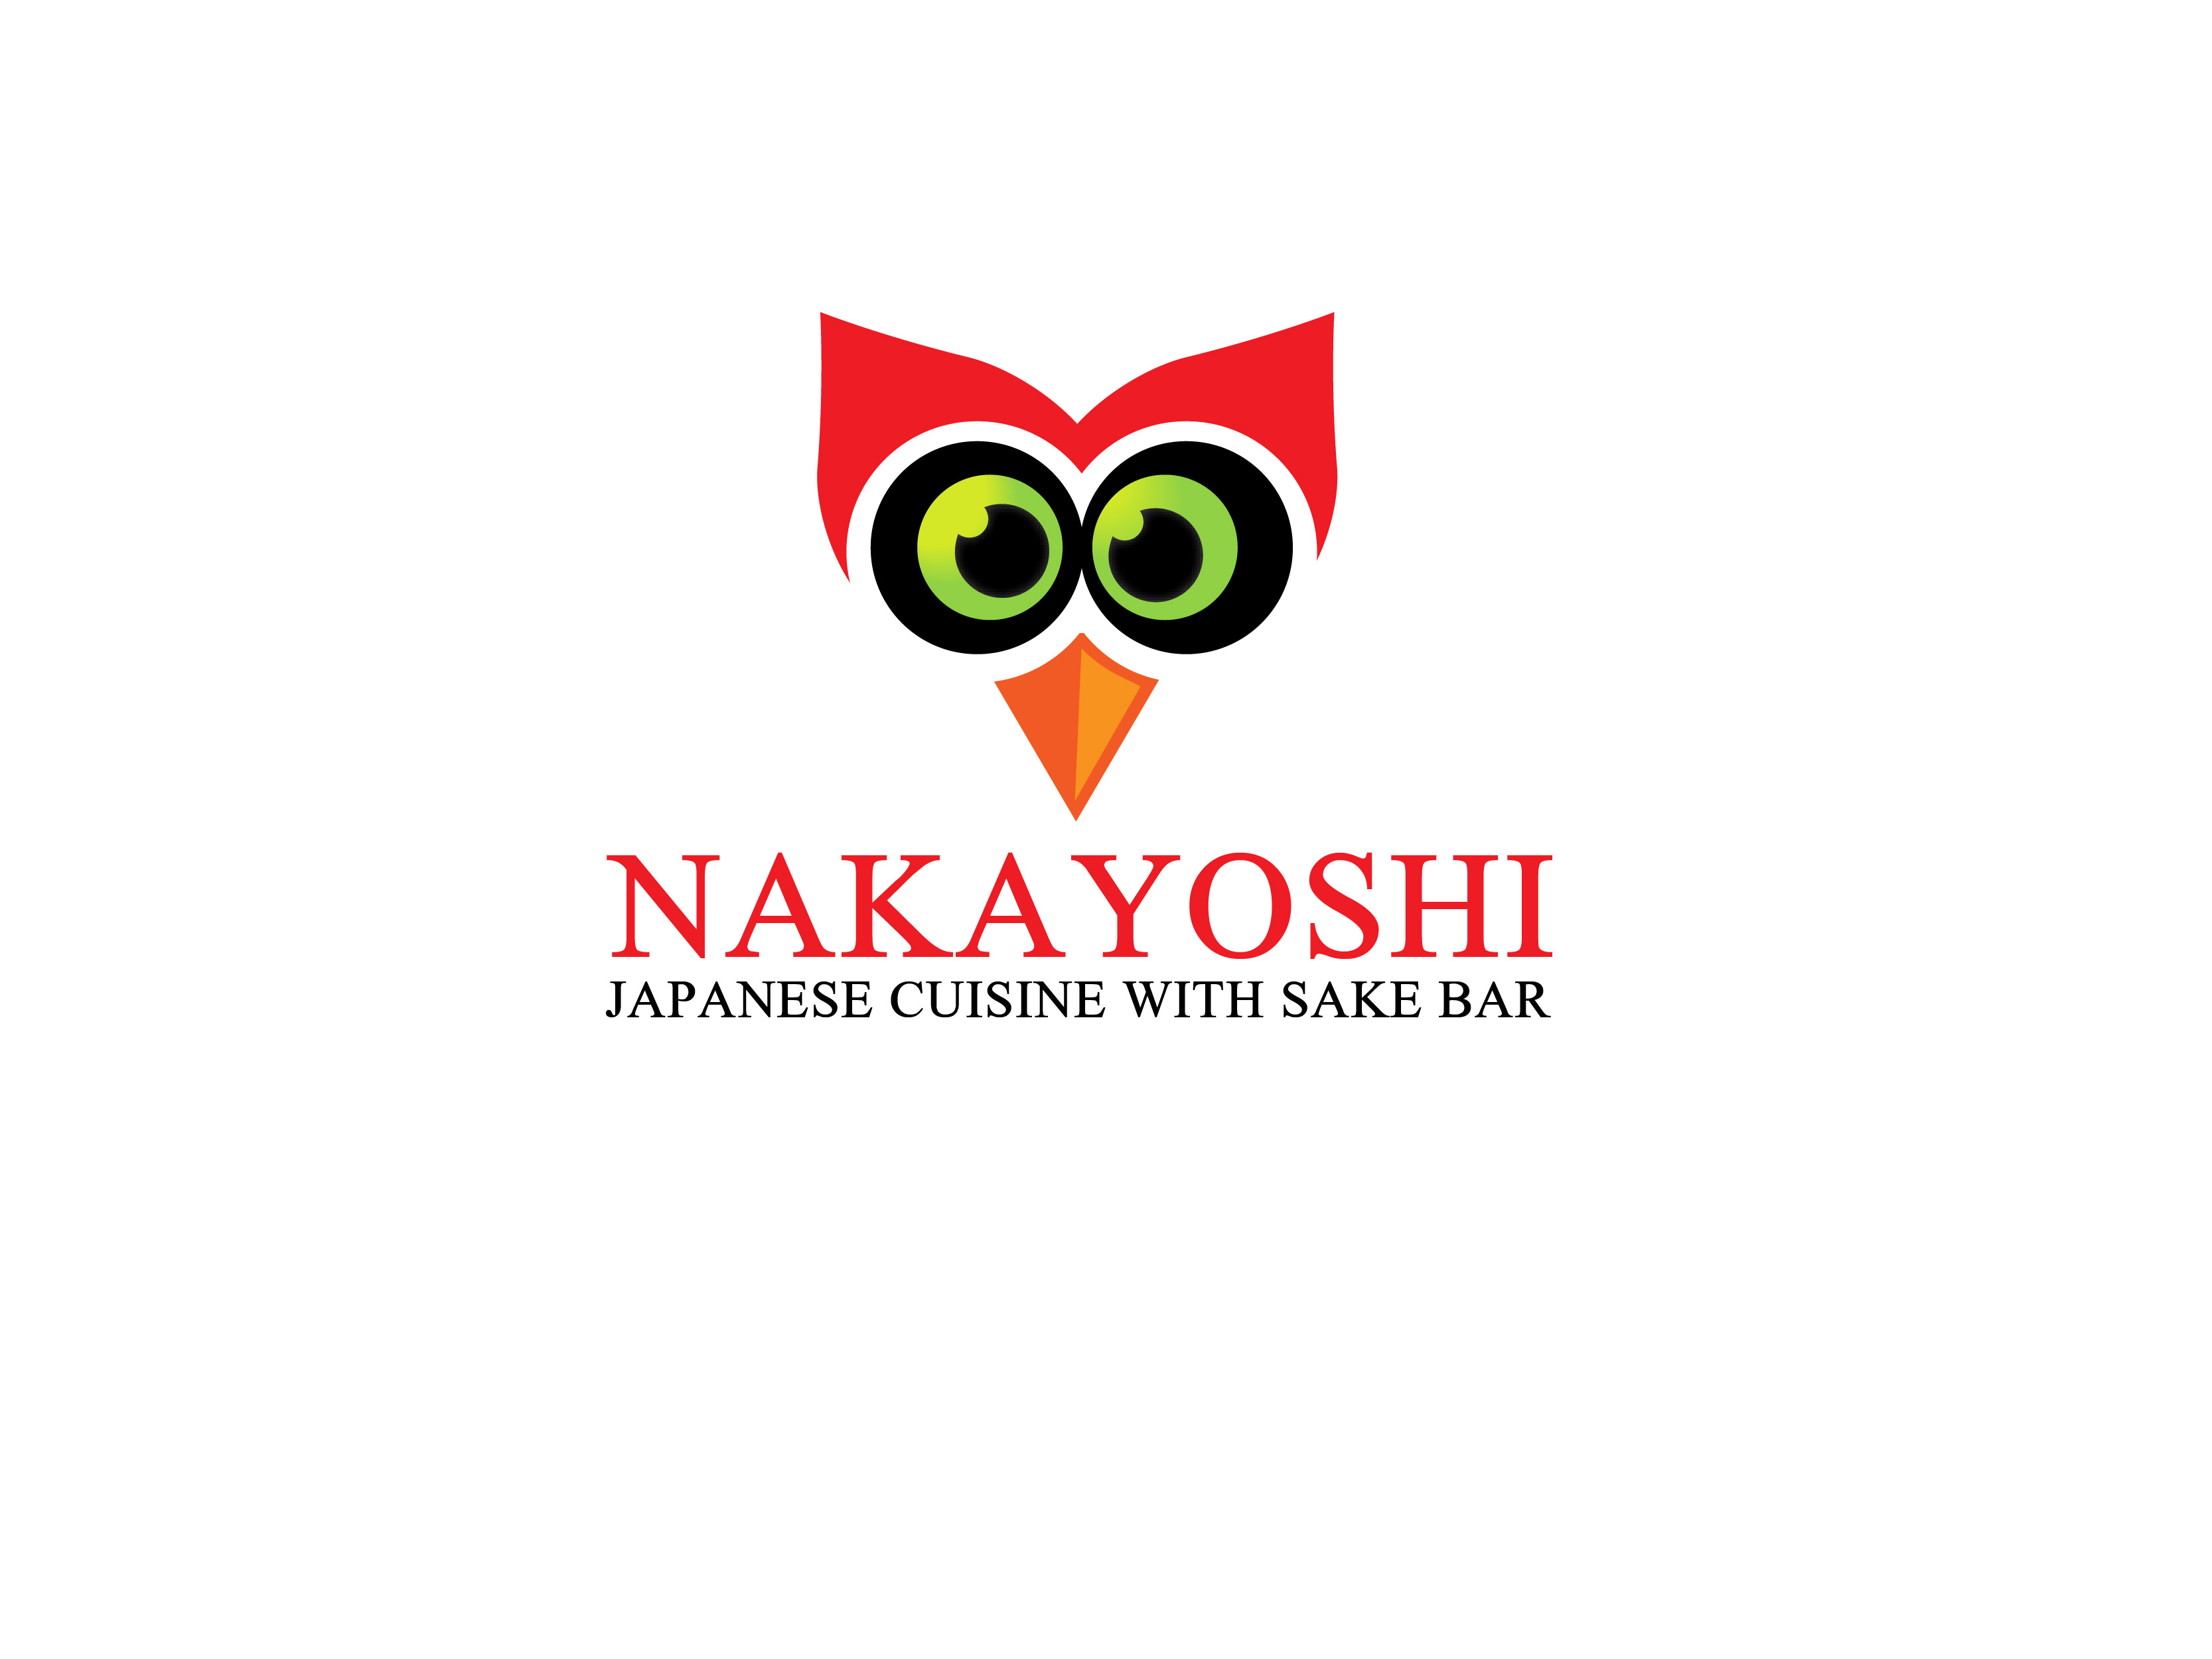 Logo Design by Kishor Patil - Entry No. 62 in the Logo Design Contest Imaginative Logo Design for NAKAYOSHI.